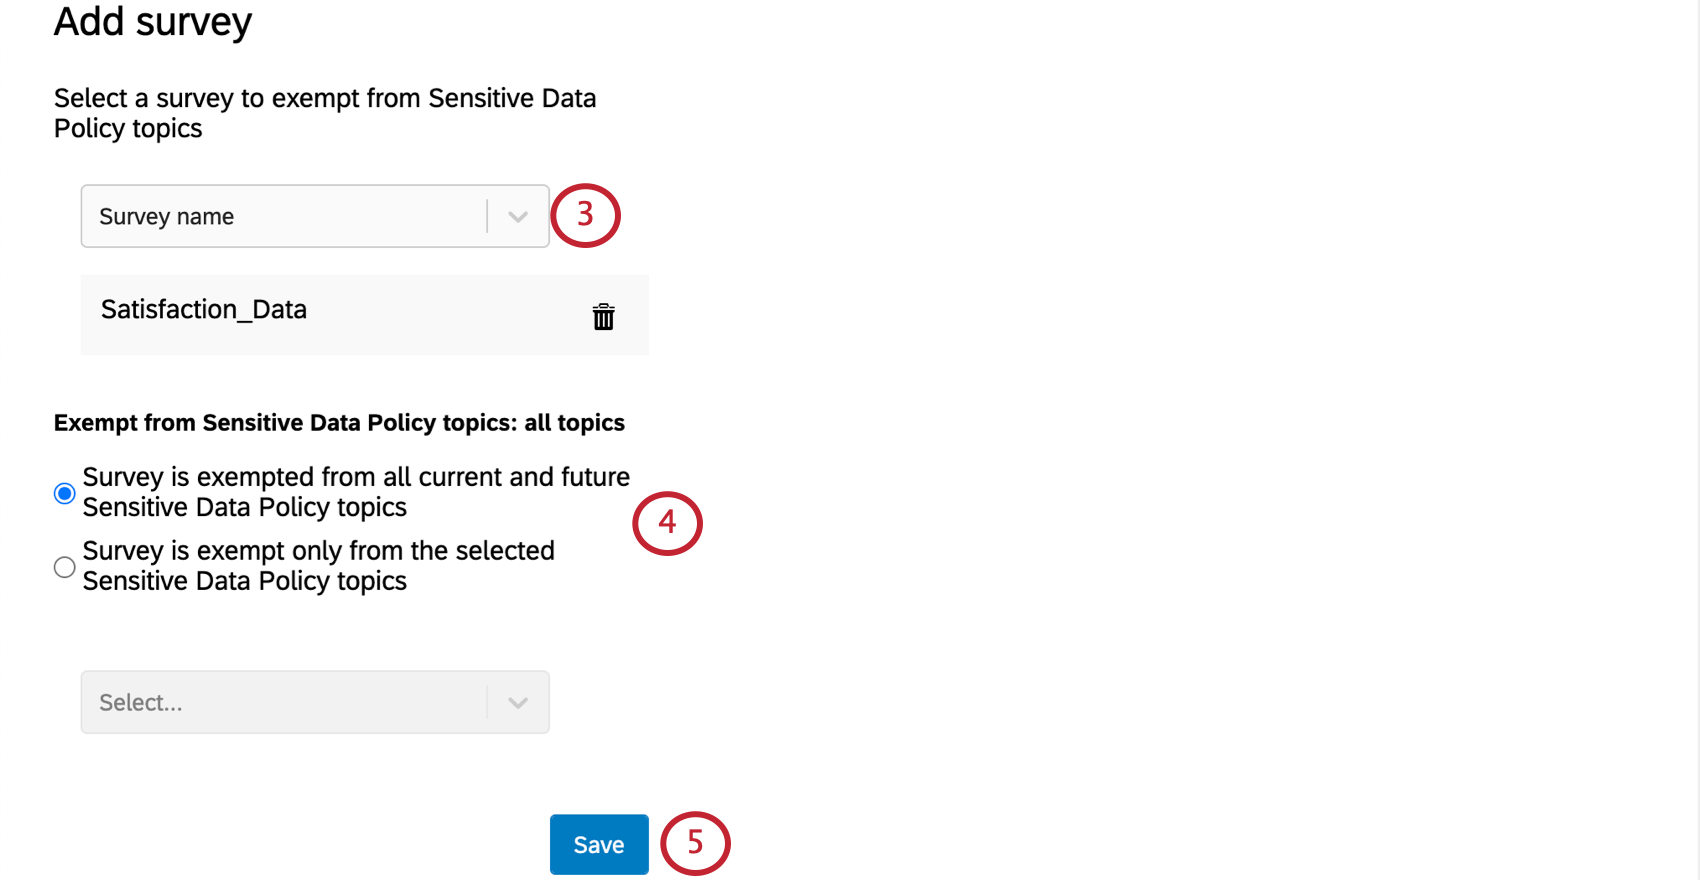 Dropdown where you can select from a list of surveys. Options as described under survey dropdown list